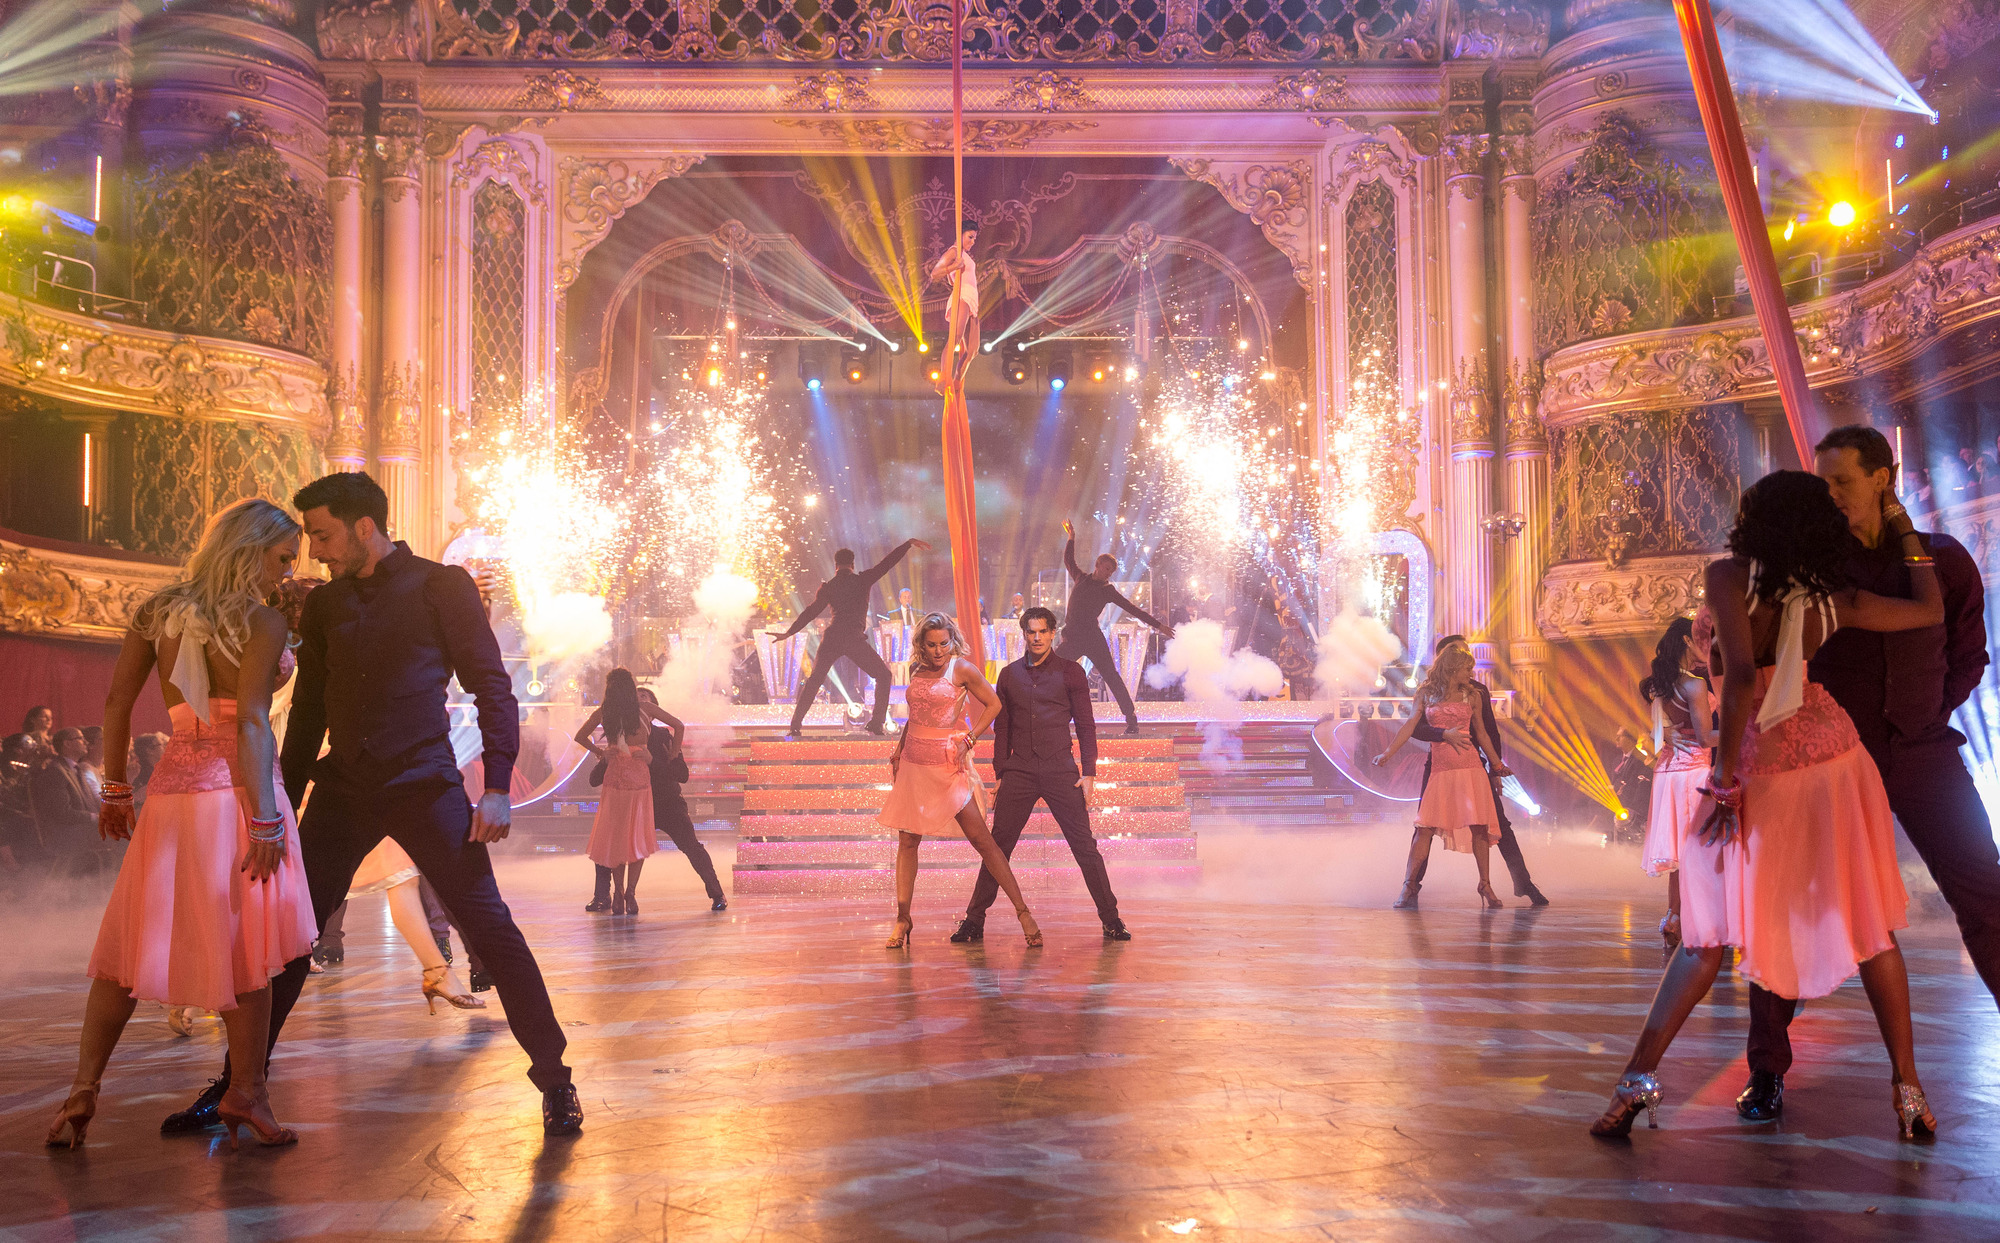 The Strictly Come Dancing contestants and professional dancers